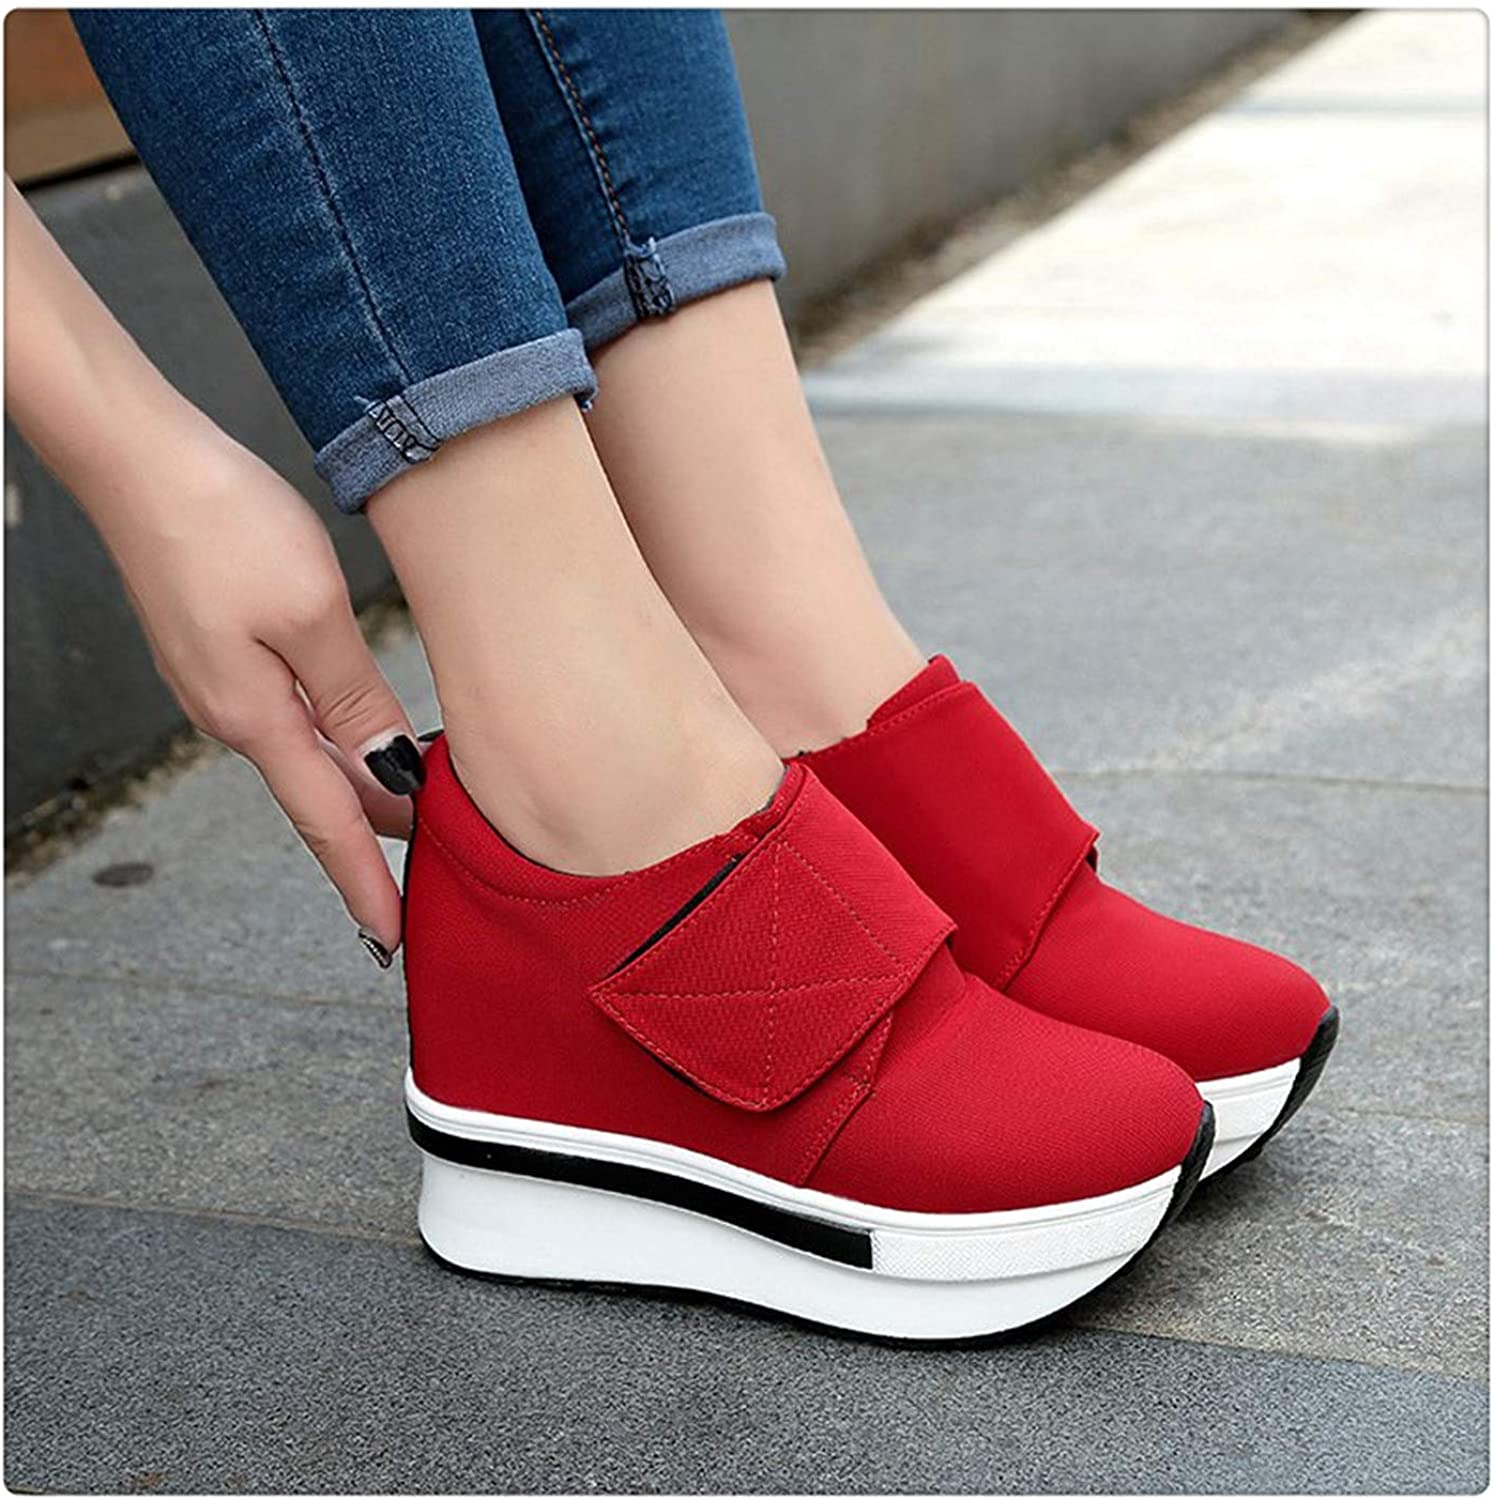 ANZLOU& Summer Women shoes Wedges Sneakers Slipony Ladies Canvas Platform shoes High Breathable Female Height Increasing Tenis Feminino Red 8